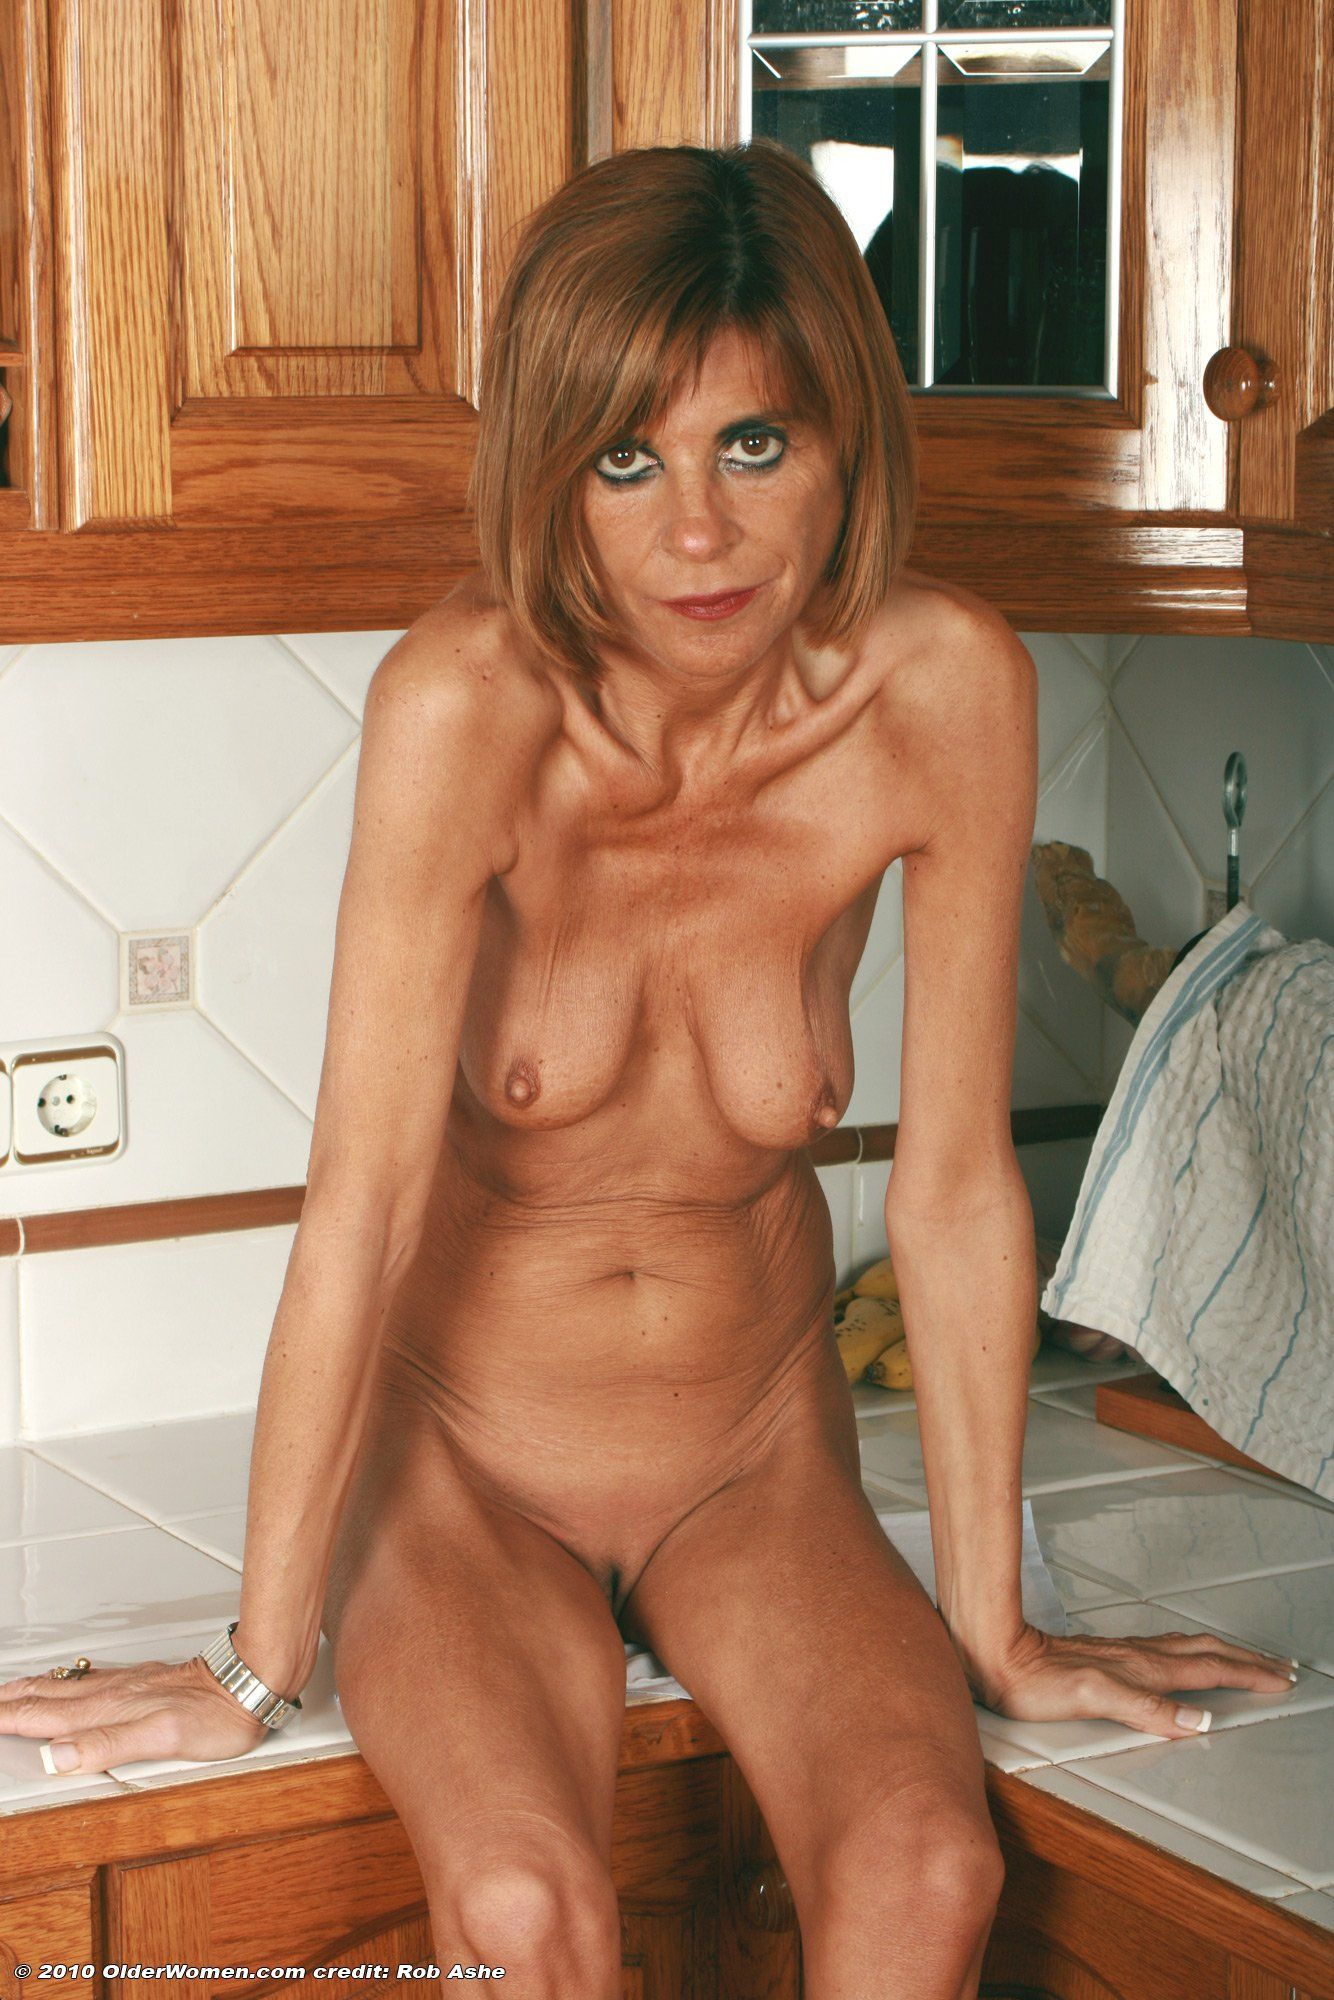 Double recommendet Dirtystain pantyhose blowjobs. Aunt judys free amateur nude  pics